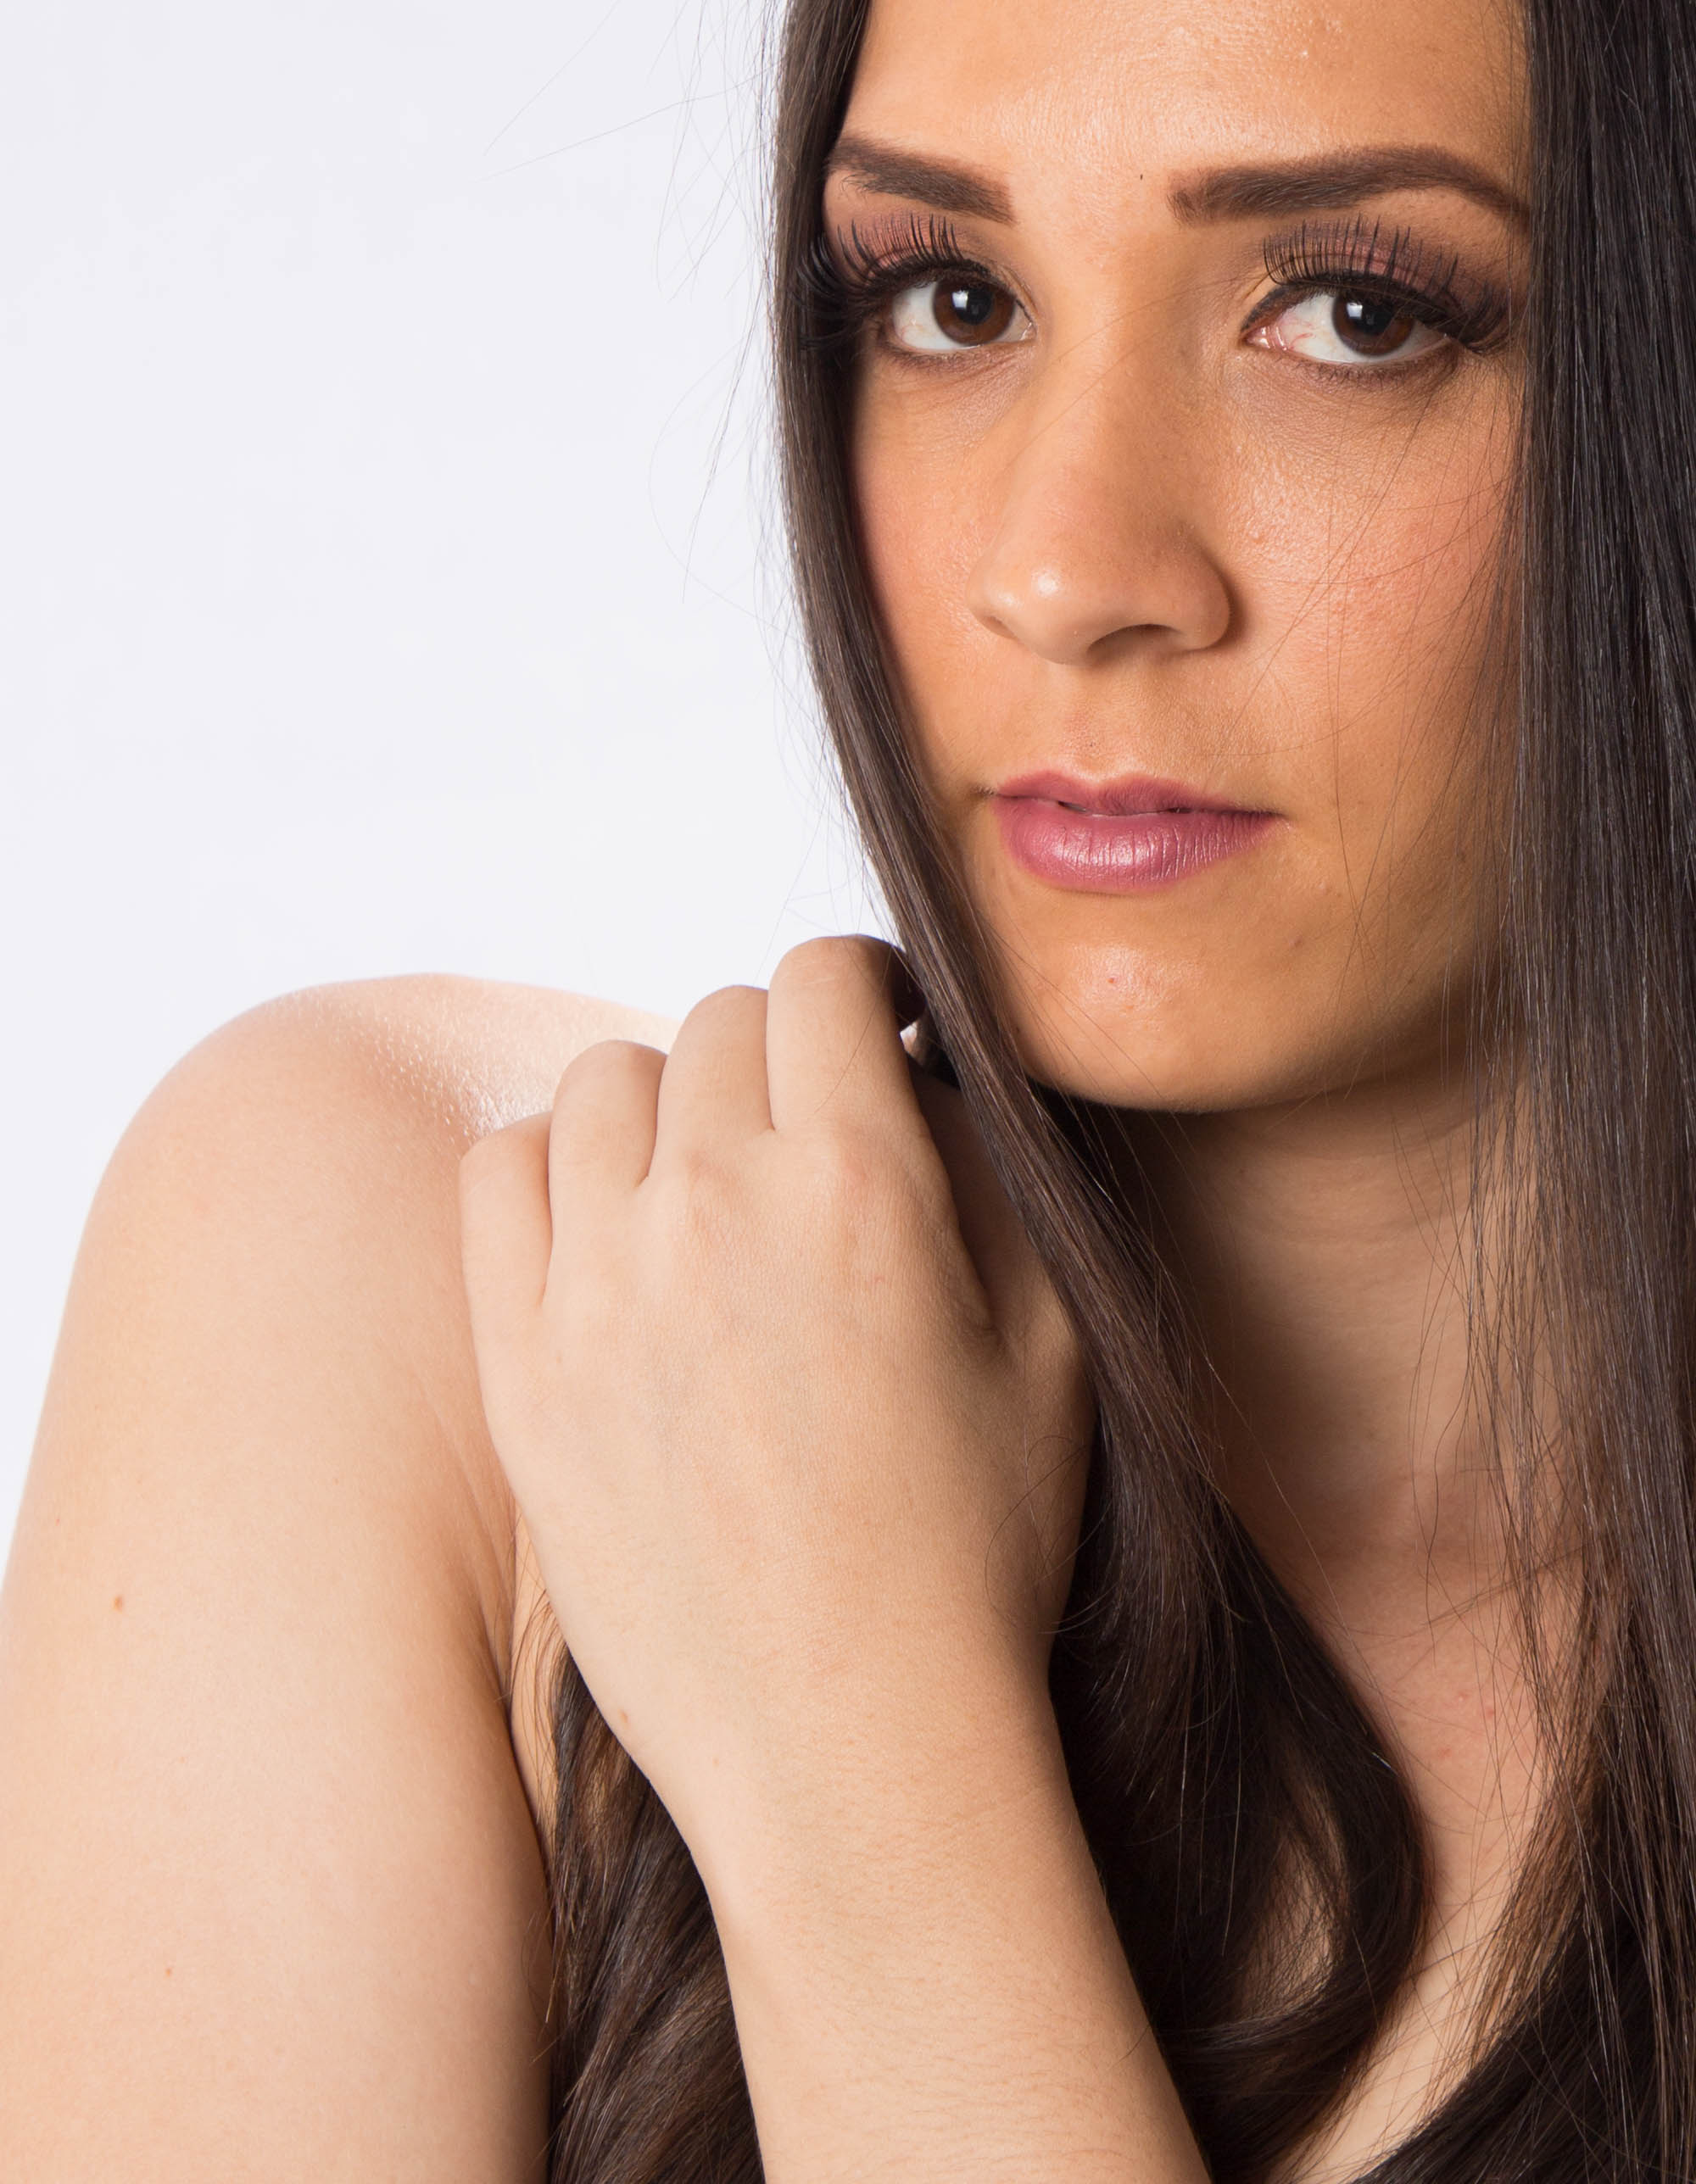 The model's natural skin tone does not match the tone of the base she used.